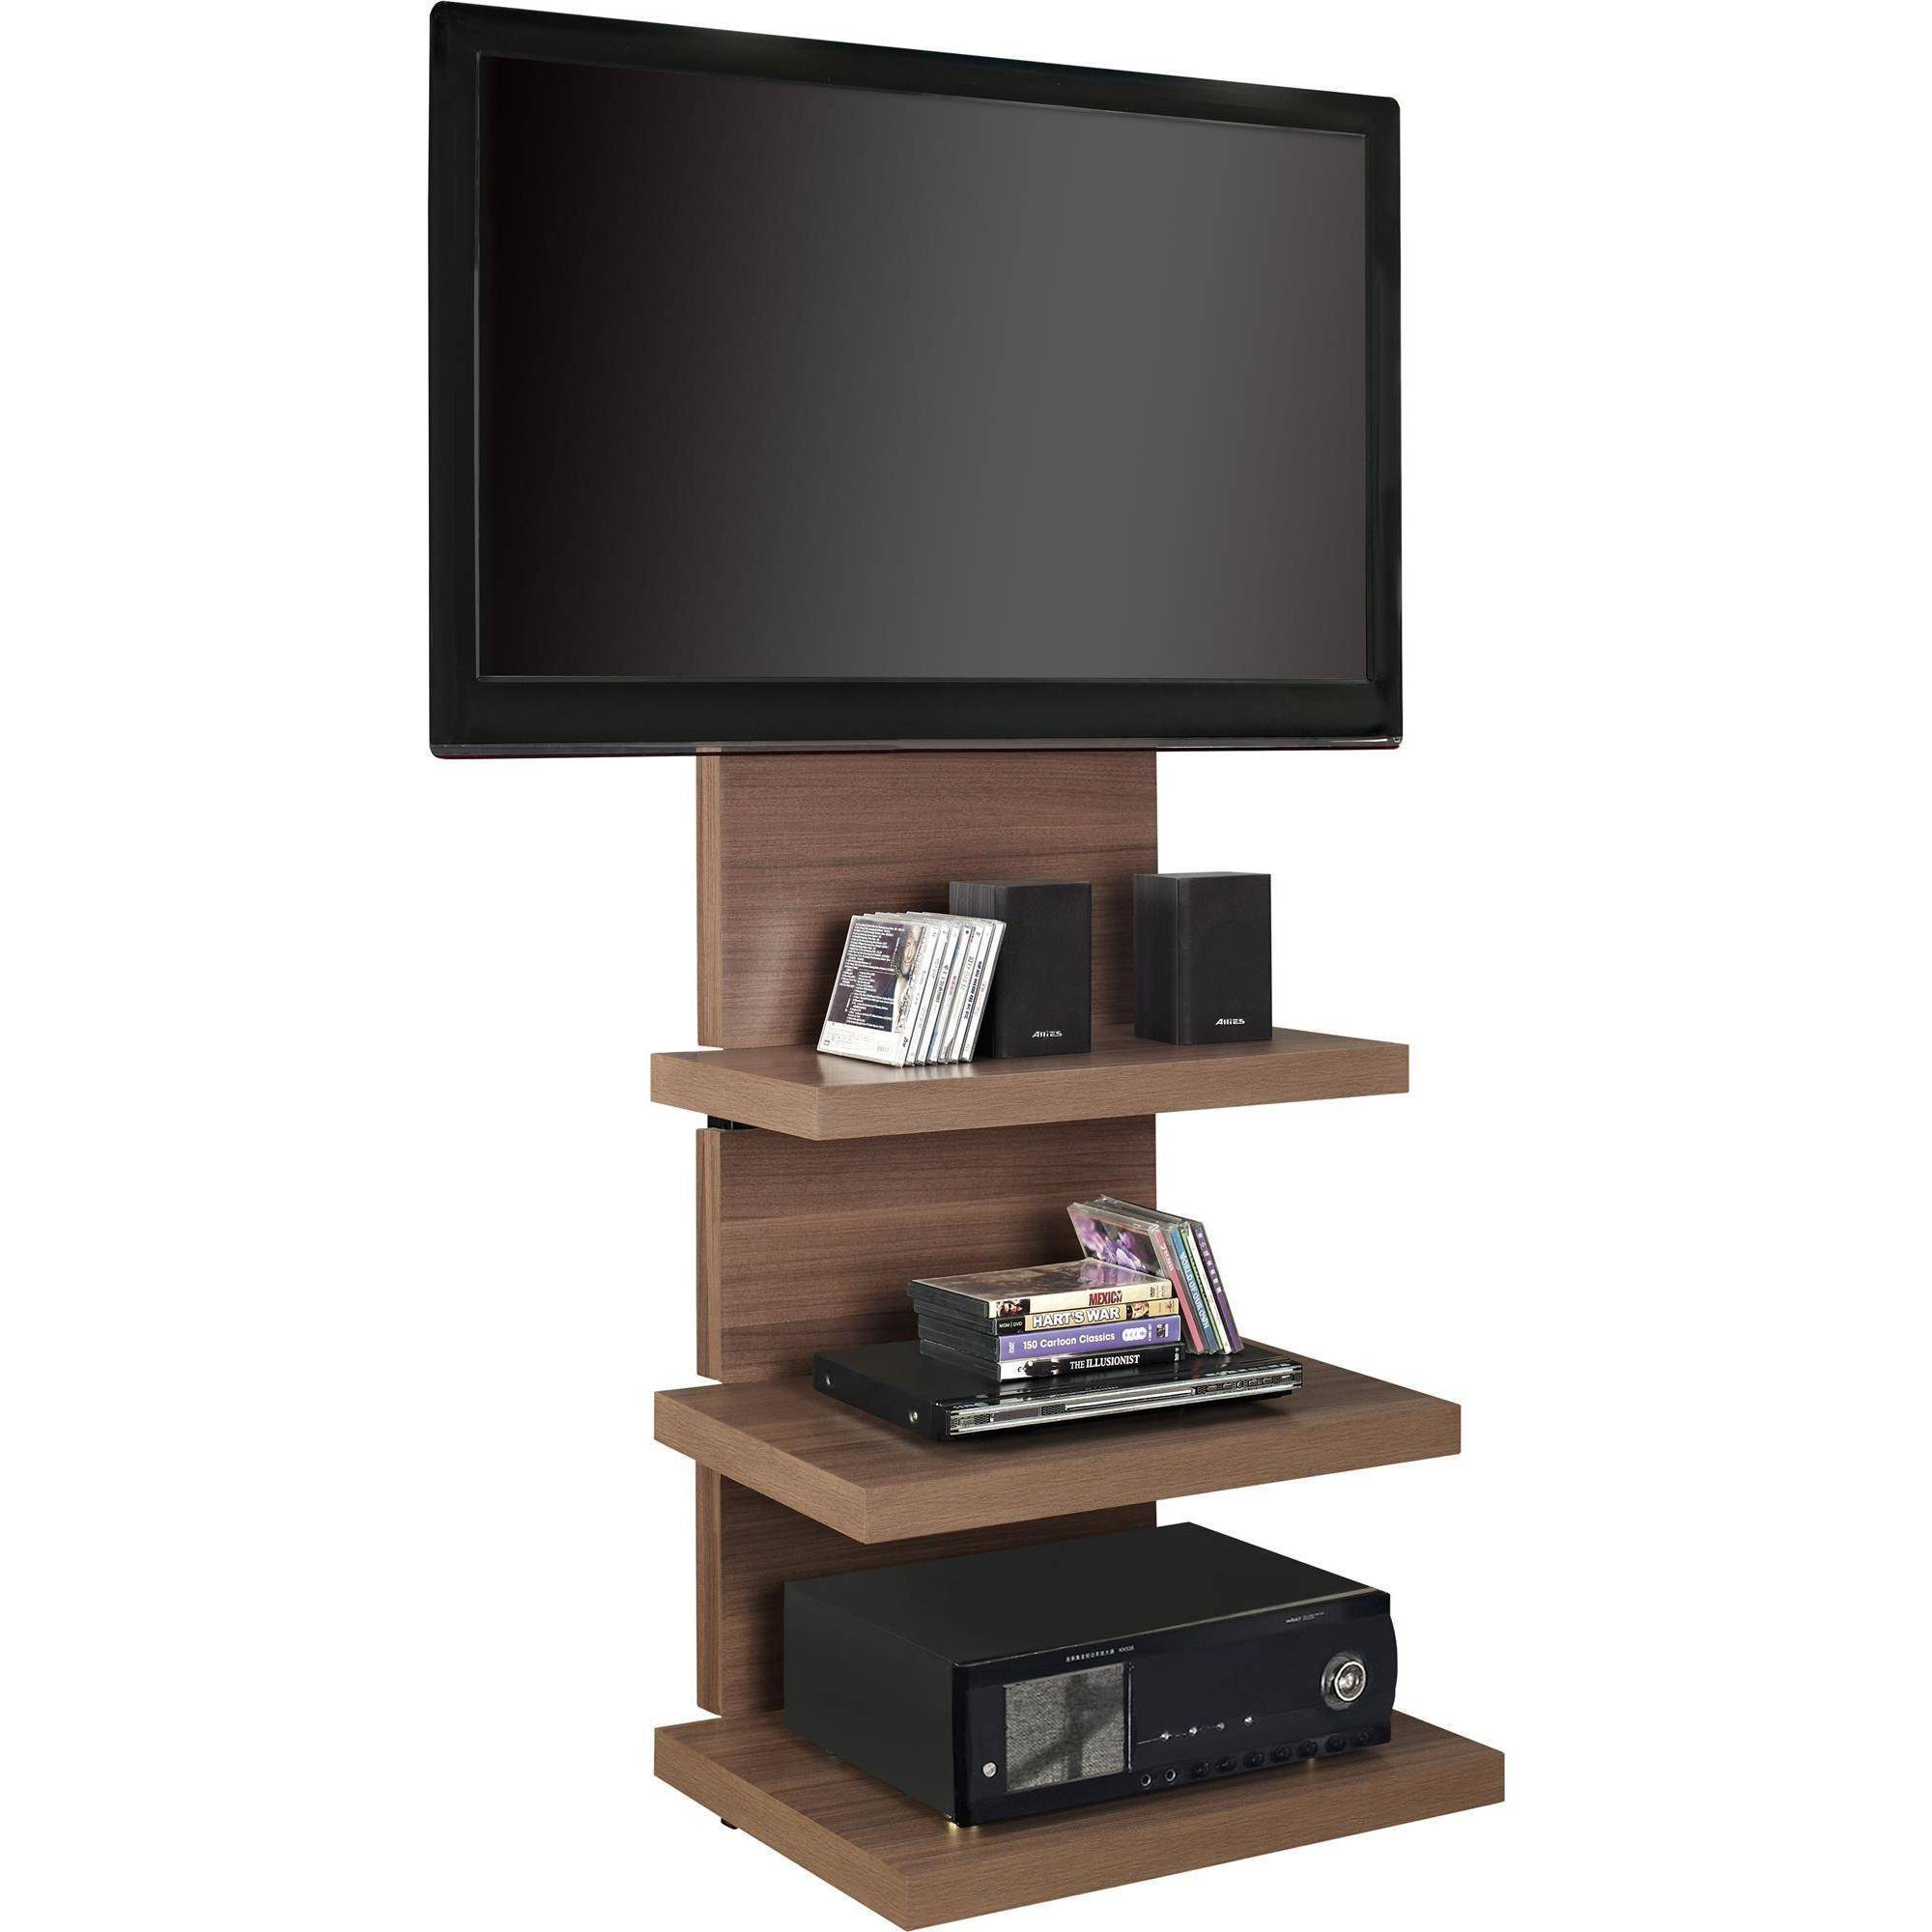 altra wall mount tv stand with 3 shelves for tvs up to 60. Black Bedroom Furniture Sets. Home Design Ideas